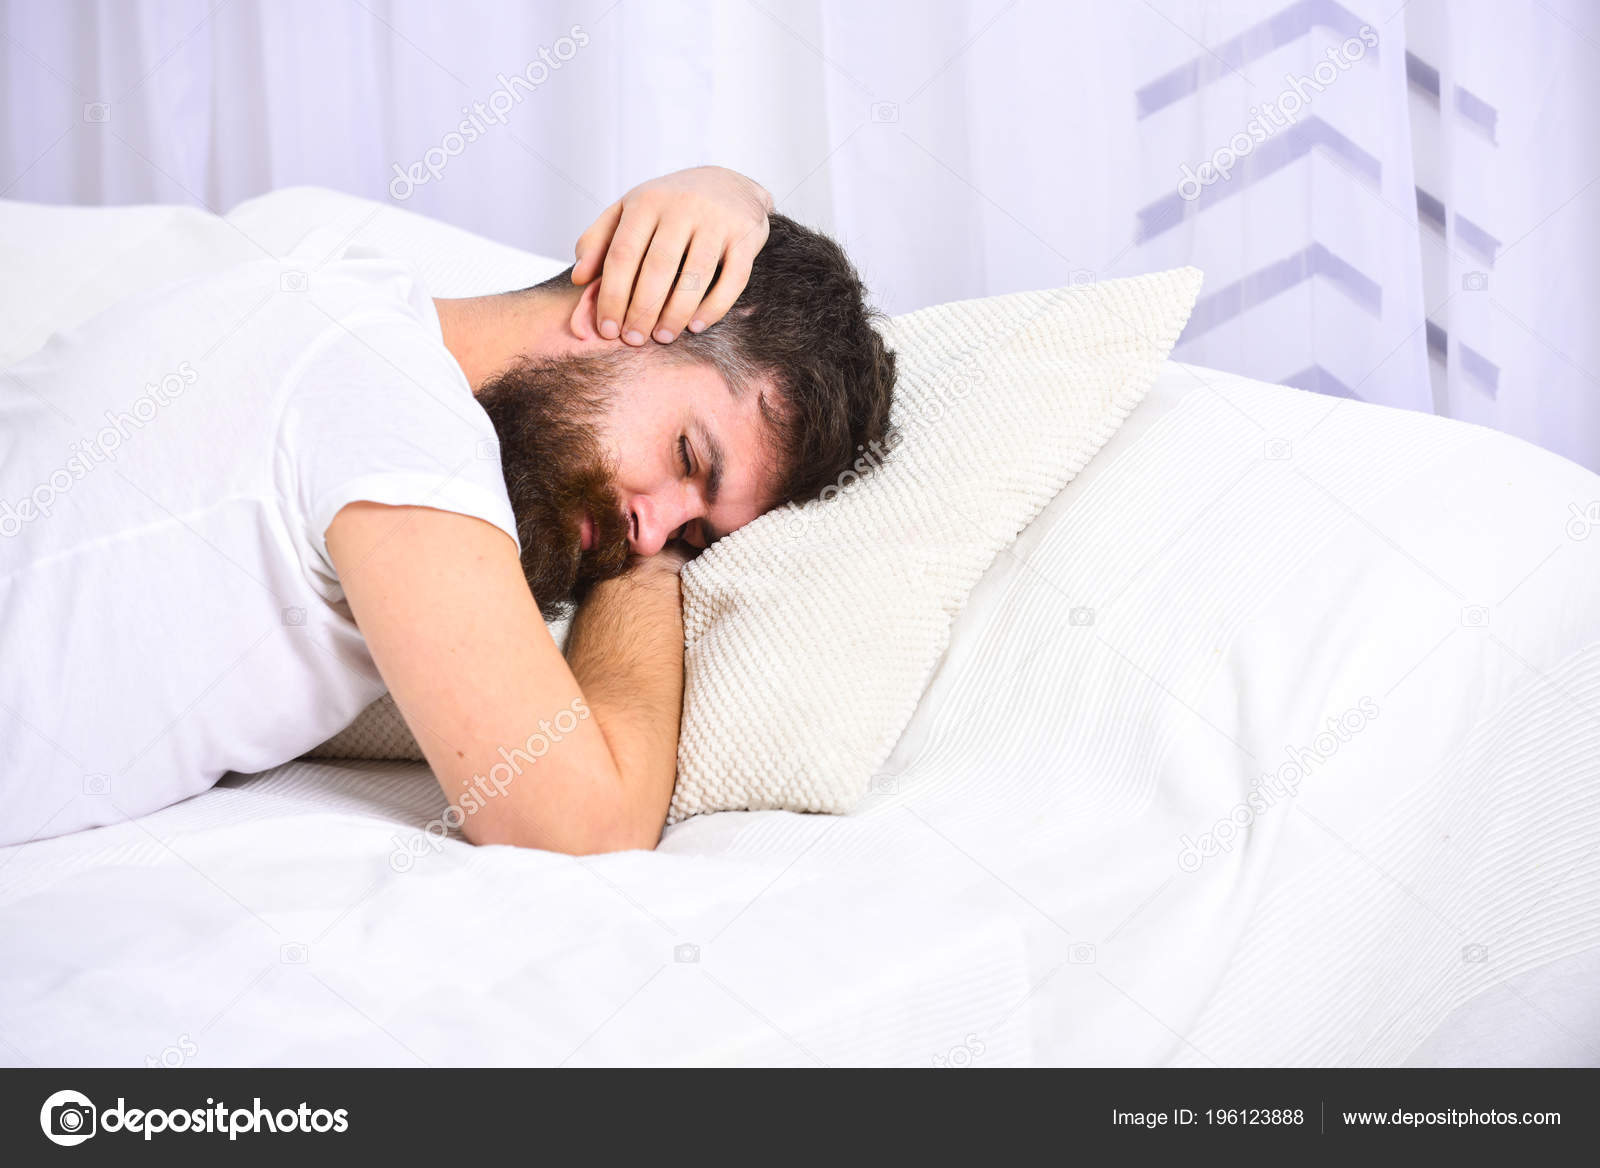 man in shirt laying on bed covering ears with hands white curtain